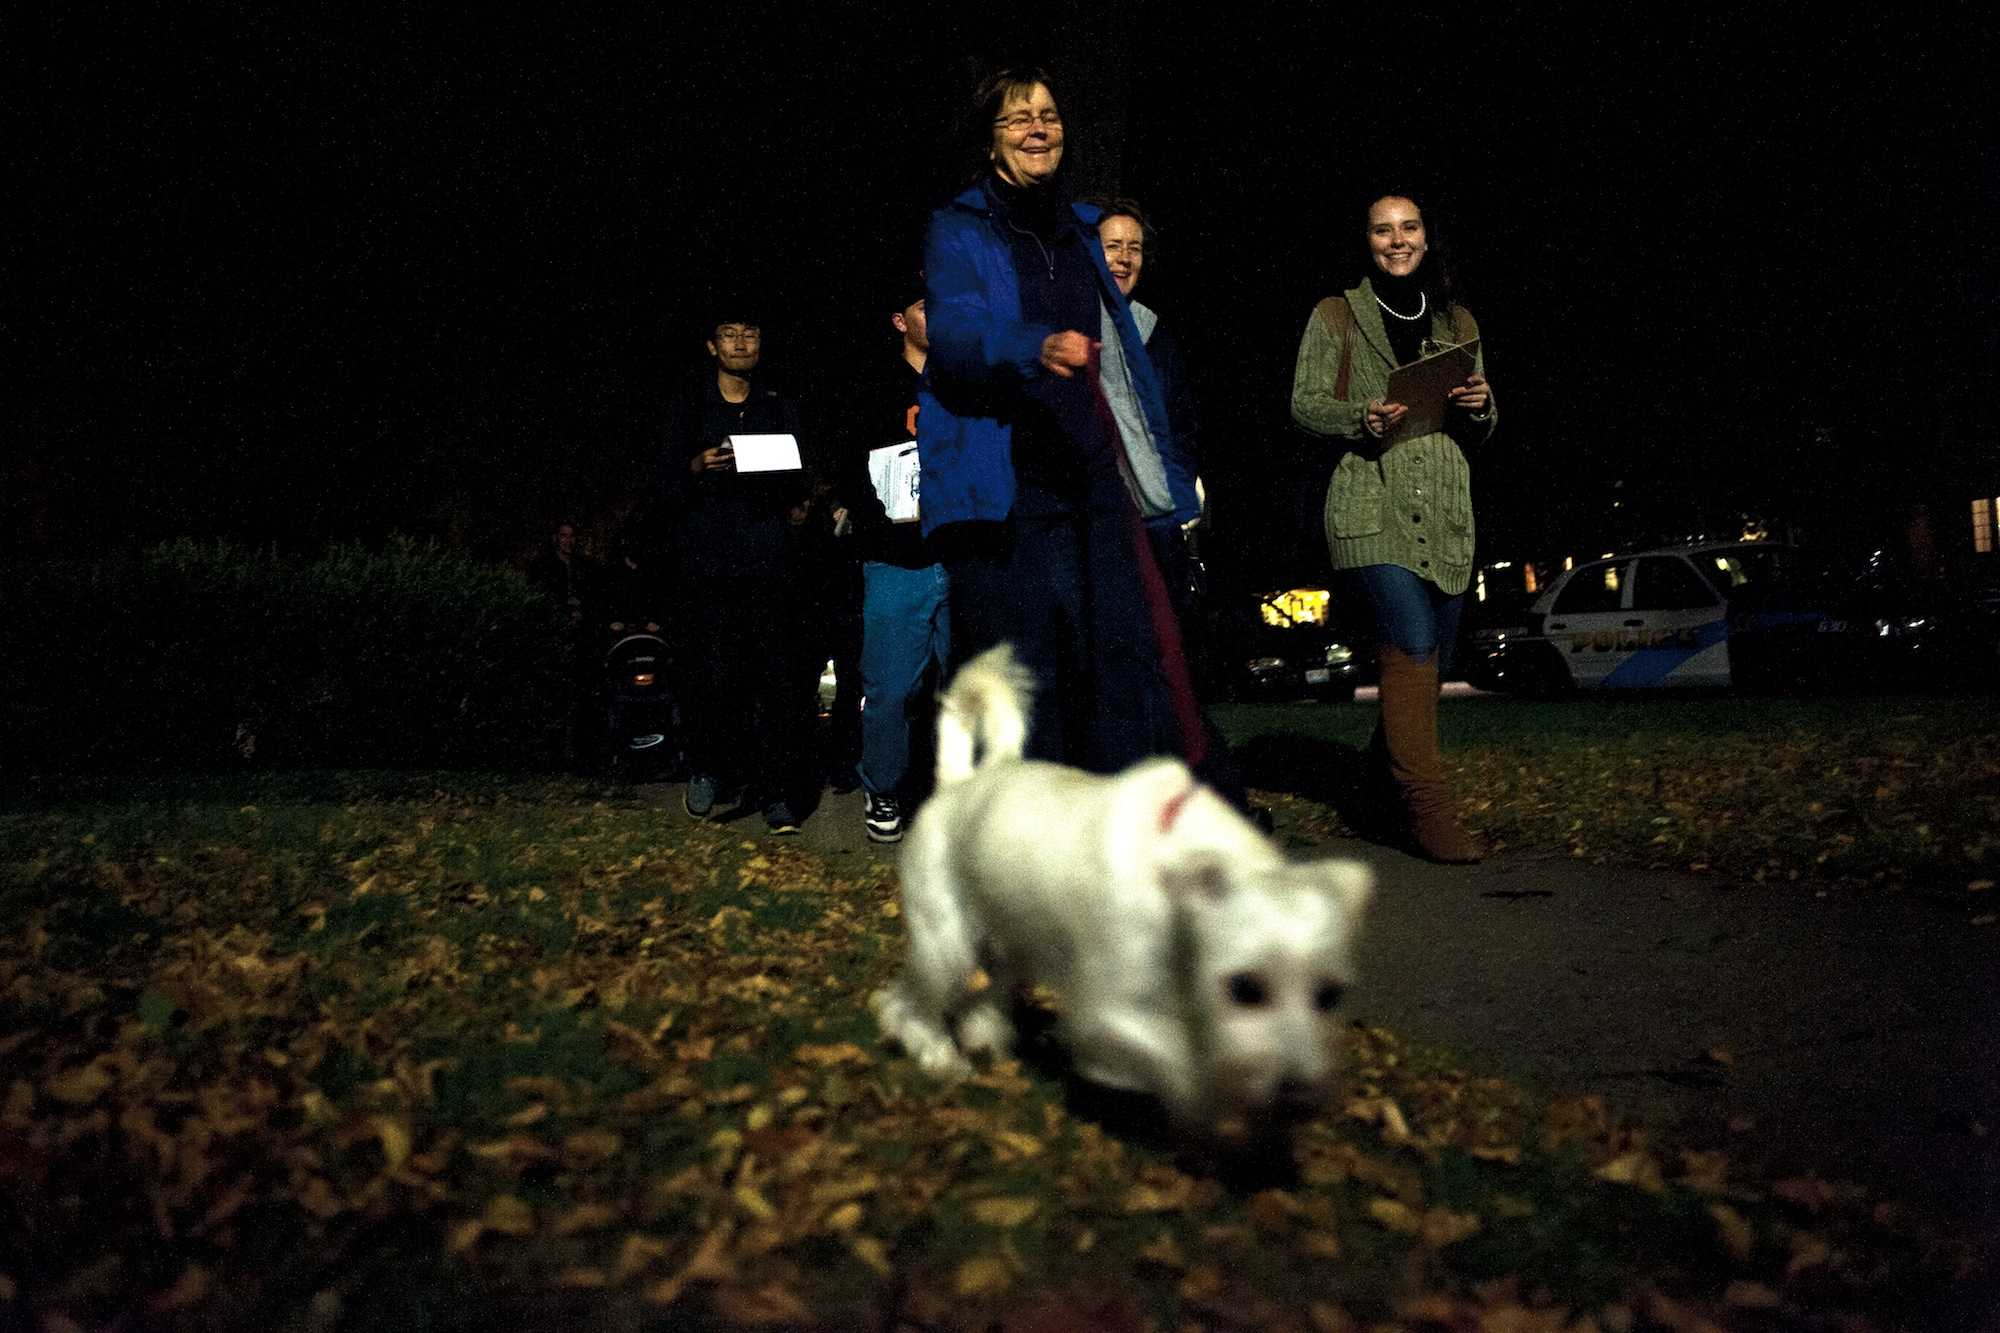 Evanston Mayor Elizabeth Tisdahl (center) tugs on her dog Comet's leash while participating in a walk organized by Associated Student Government senator Jane Gilmore (right) to identify poorly lit off-campus areas.